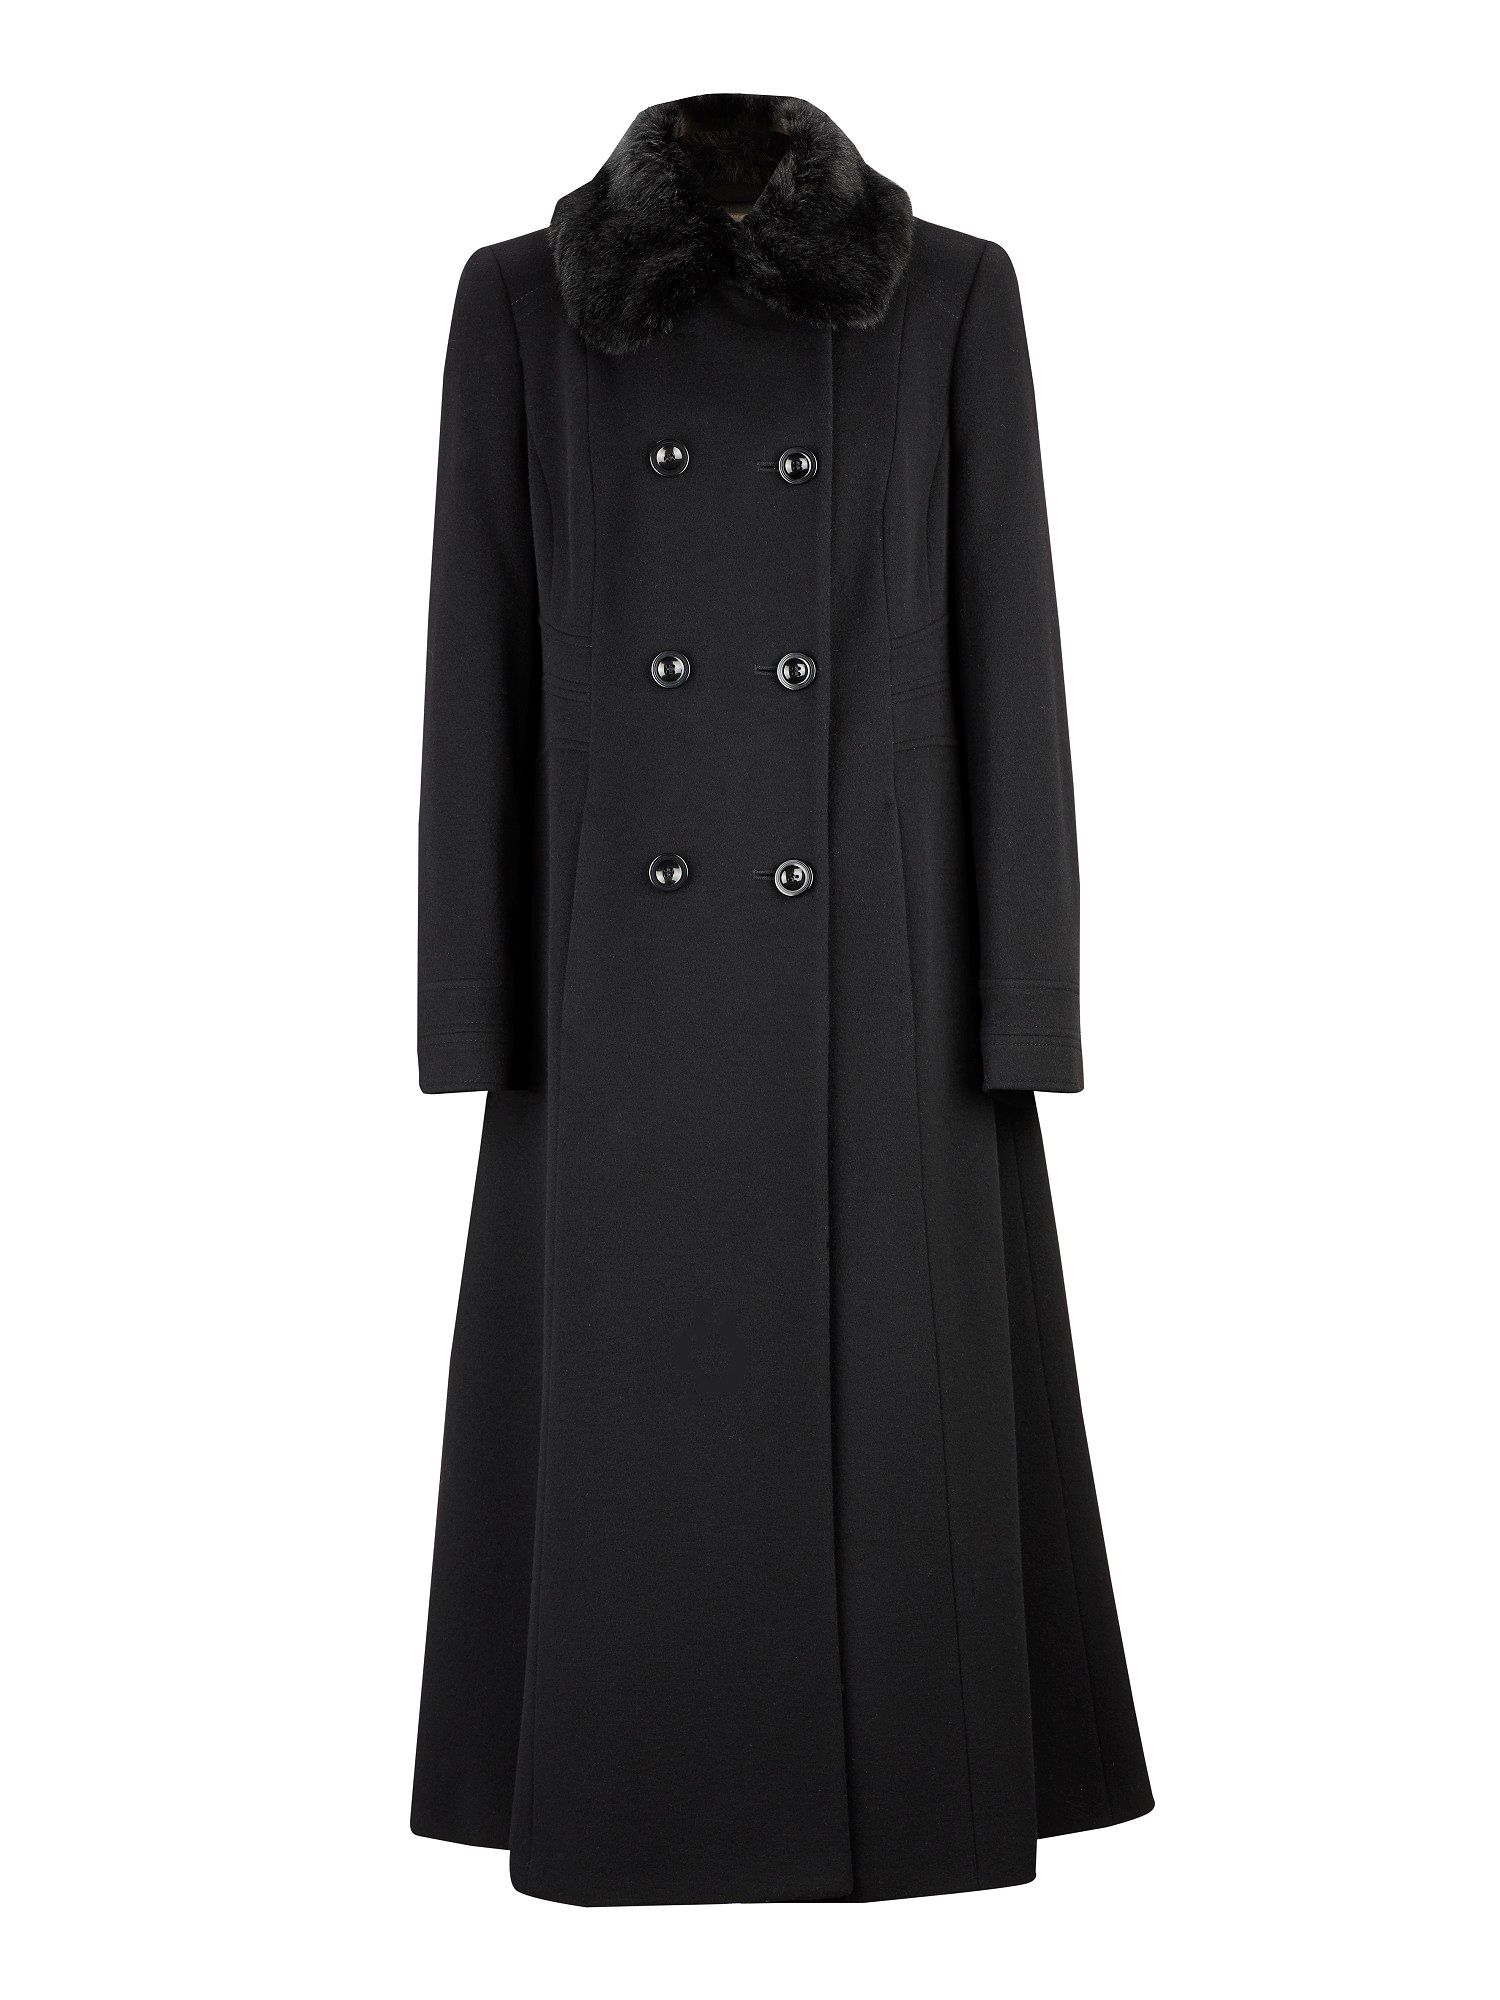 Long fit and flare black coat